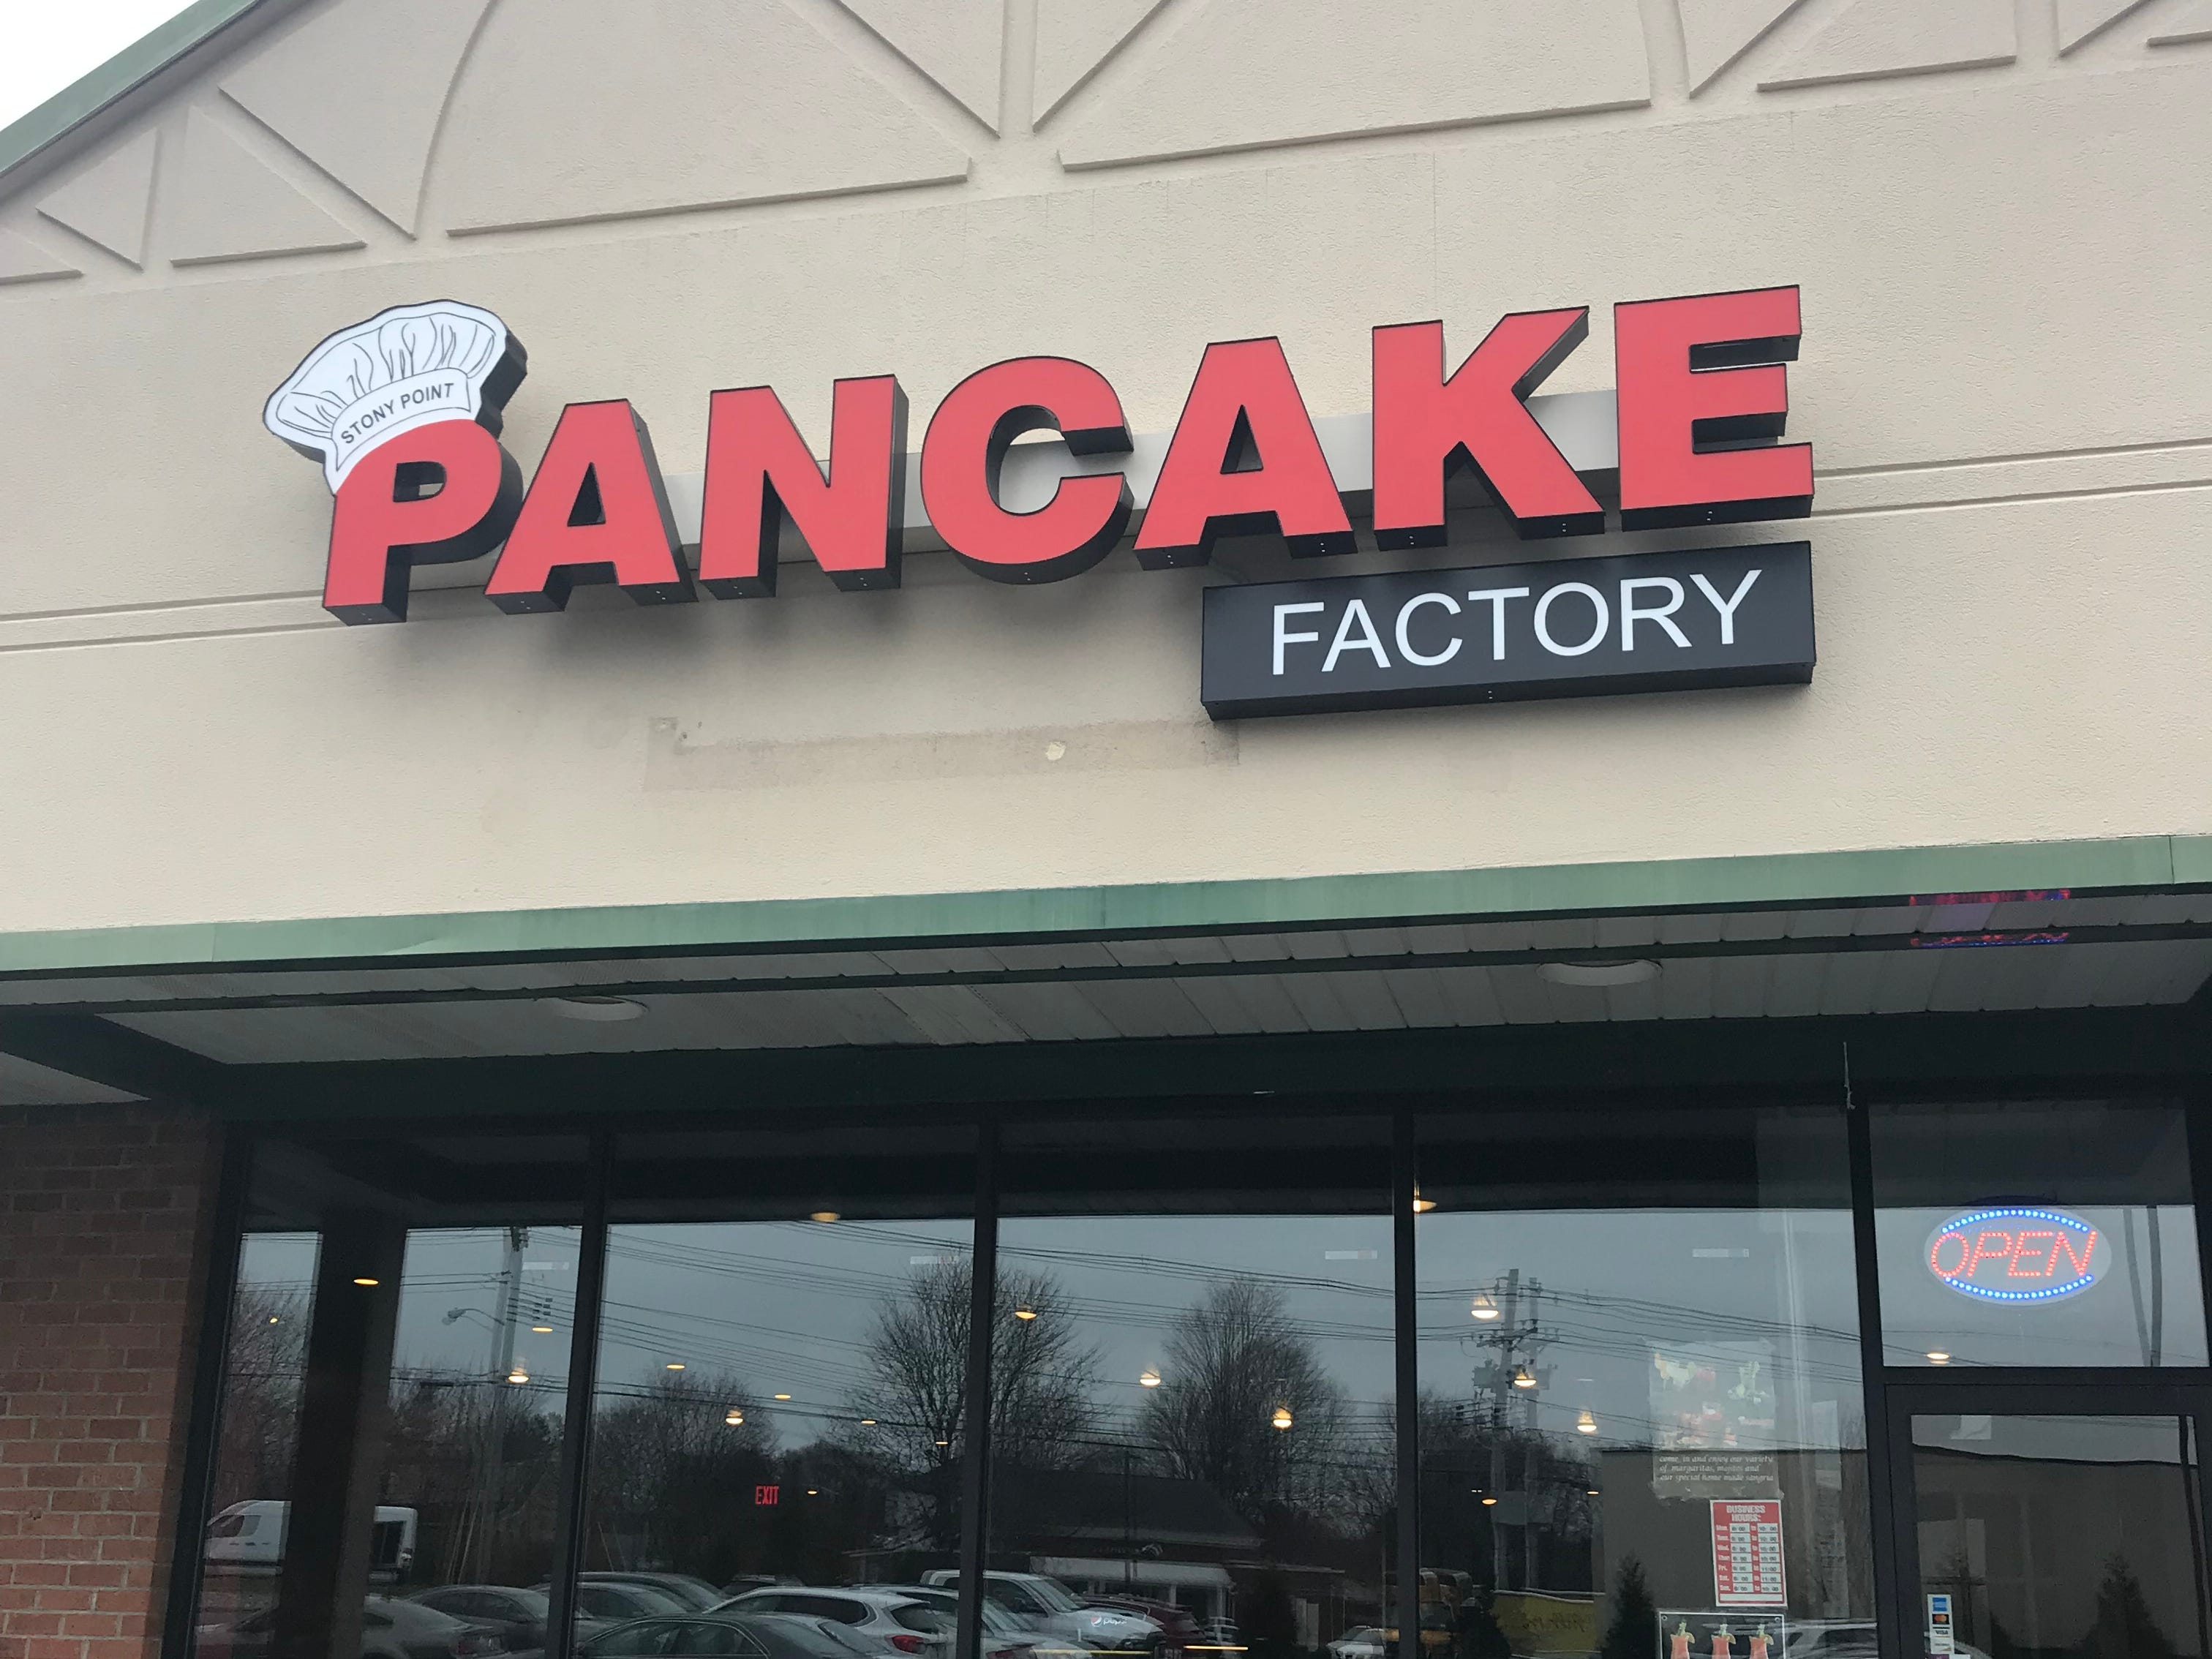 Stony Point Pancake Factory serves pancakes all day.